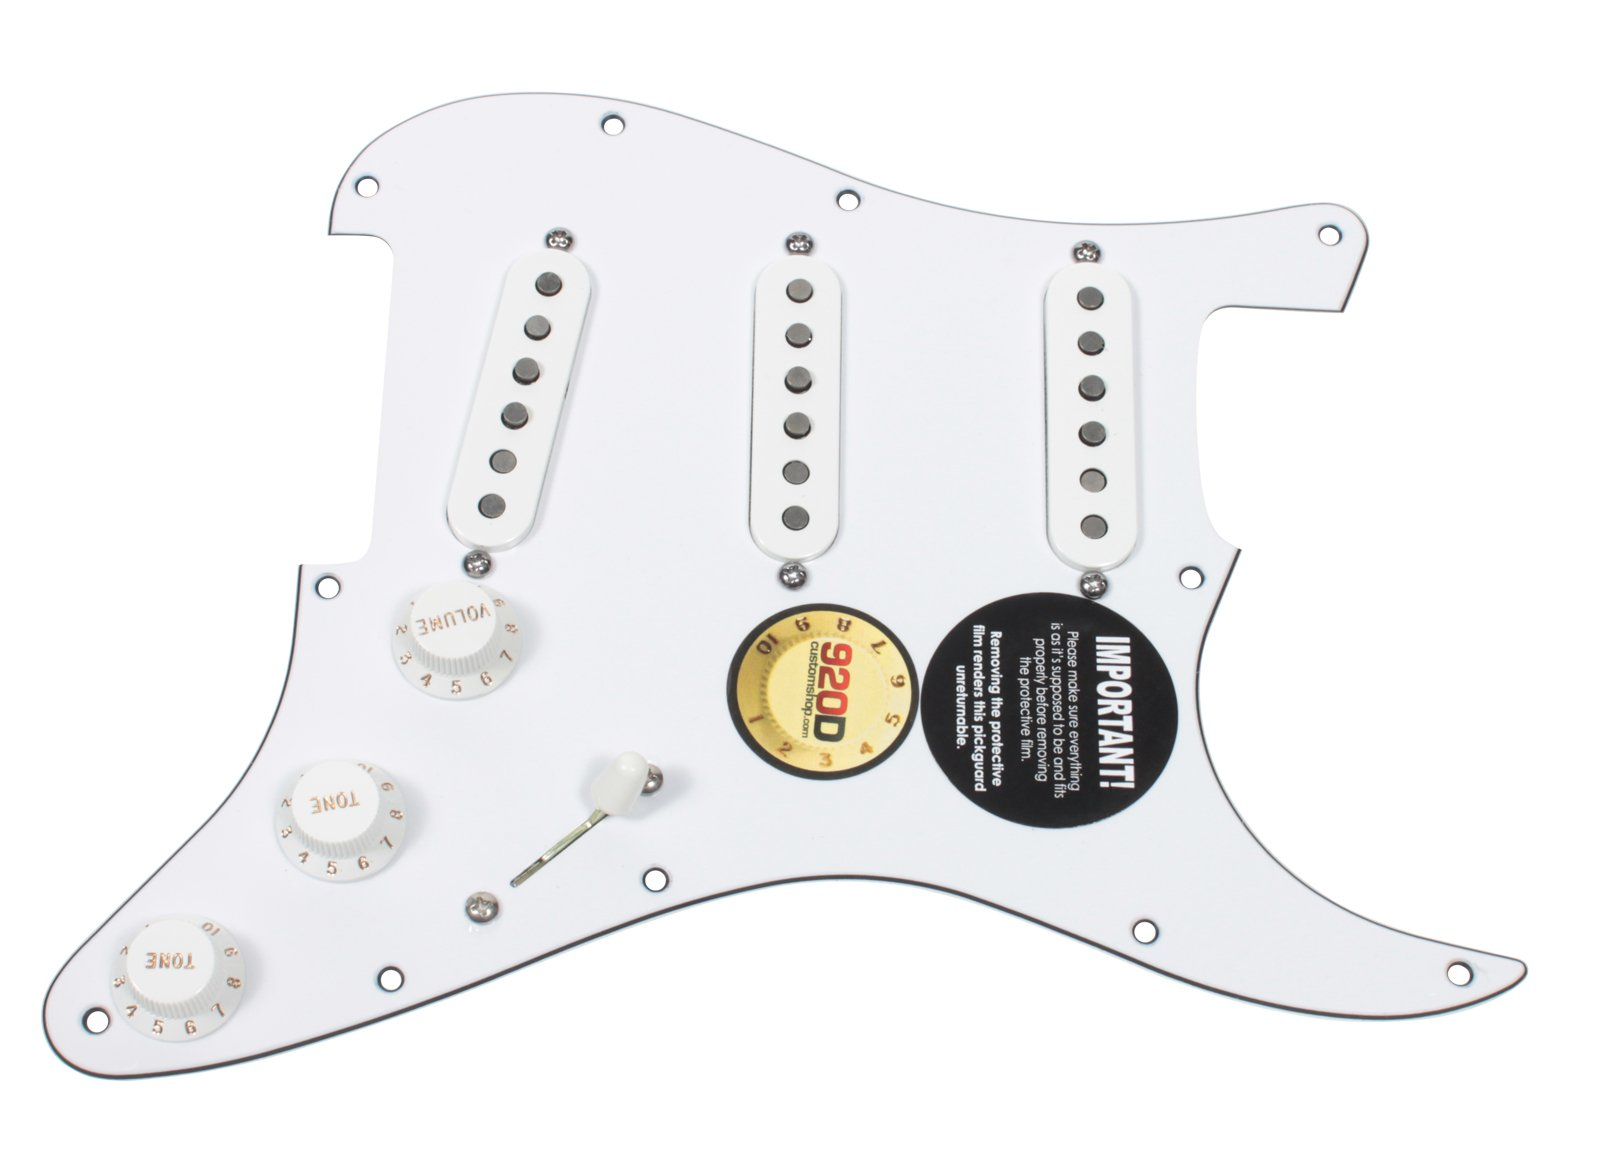 Seymour Duncan SSL-1 Loaded Strat Pickguard Strat WH/WH by Seymour Duncan (Image #1)